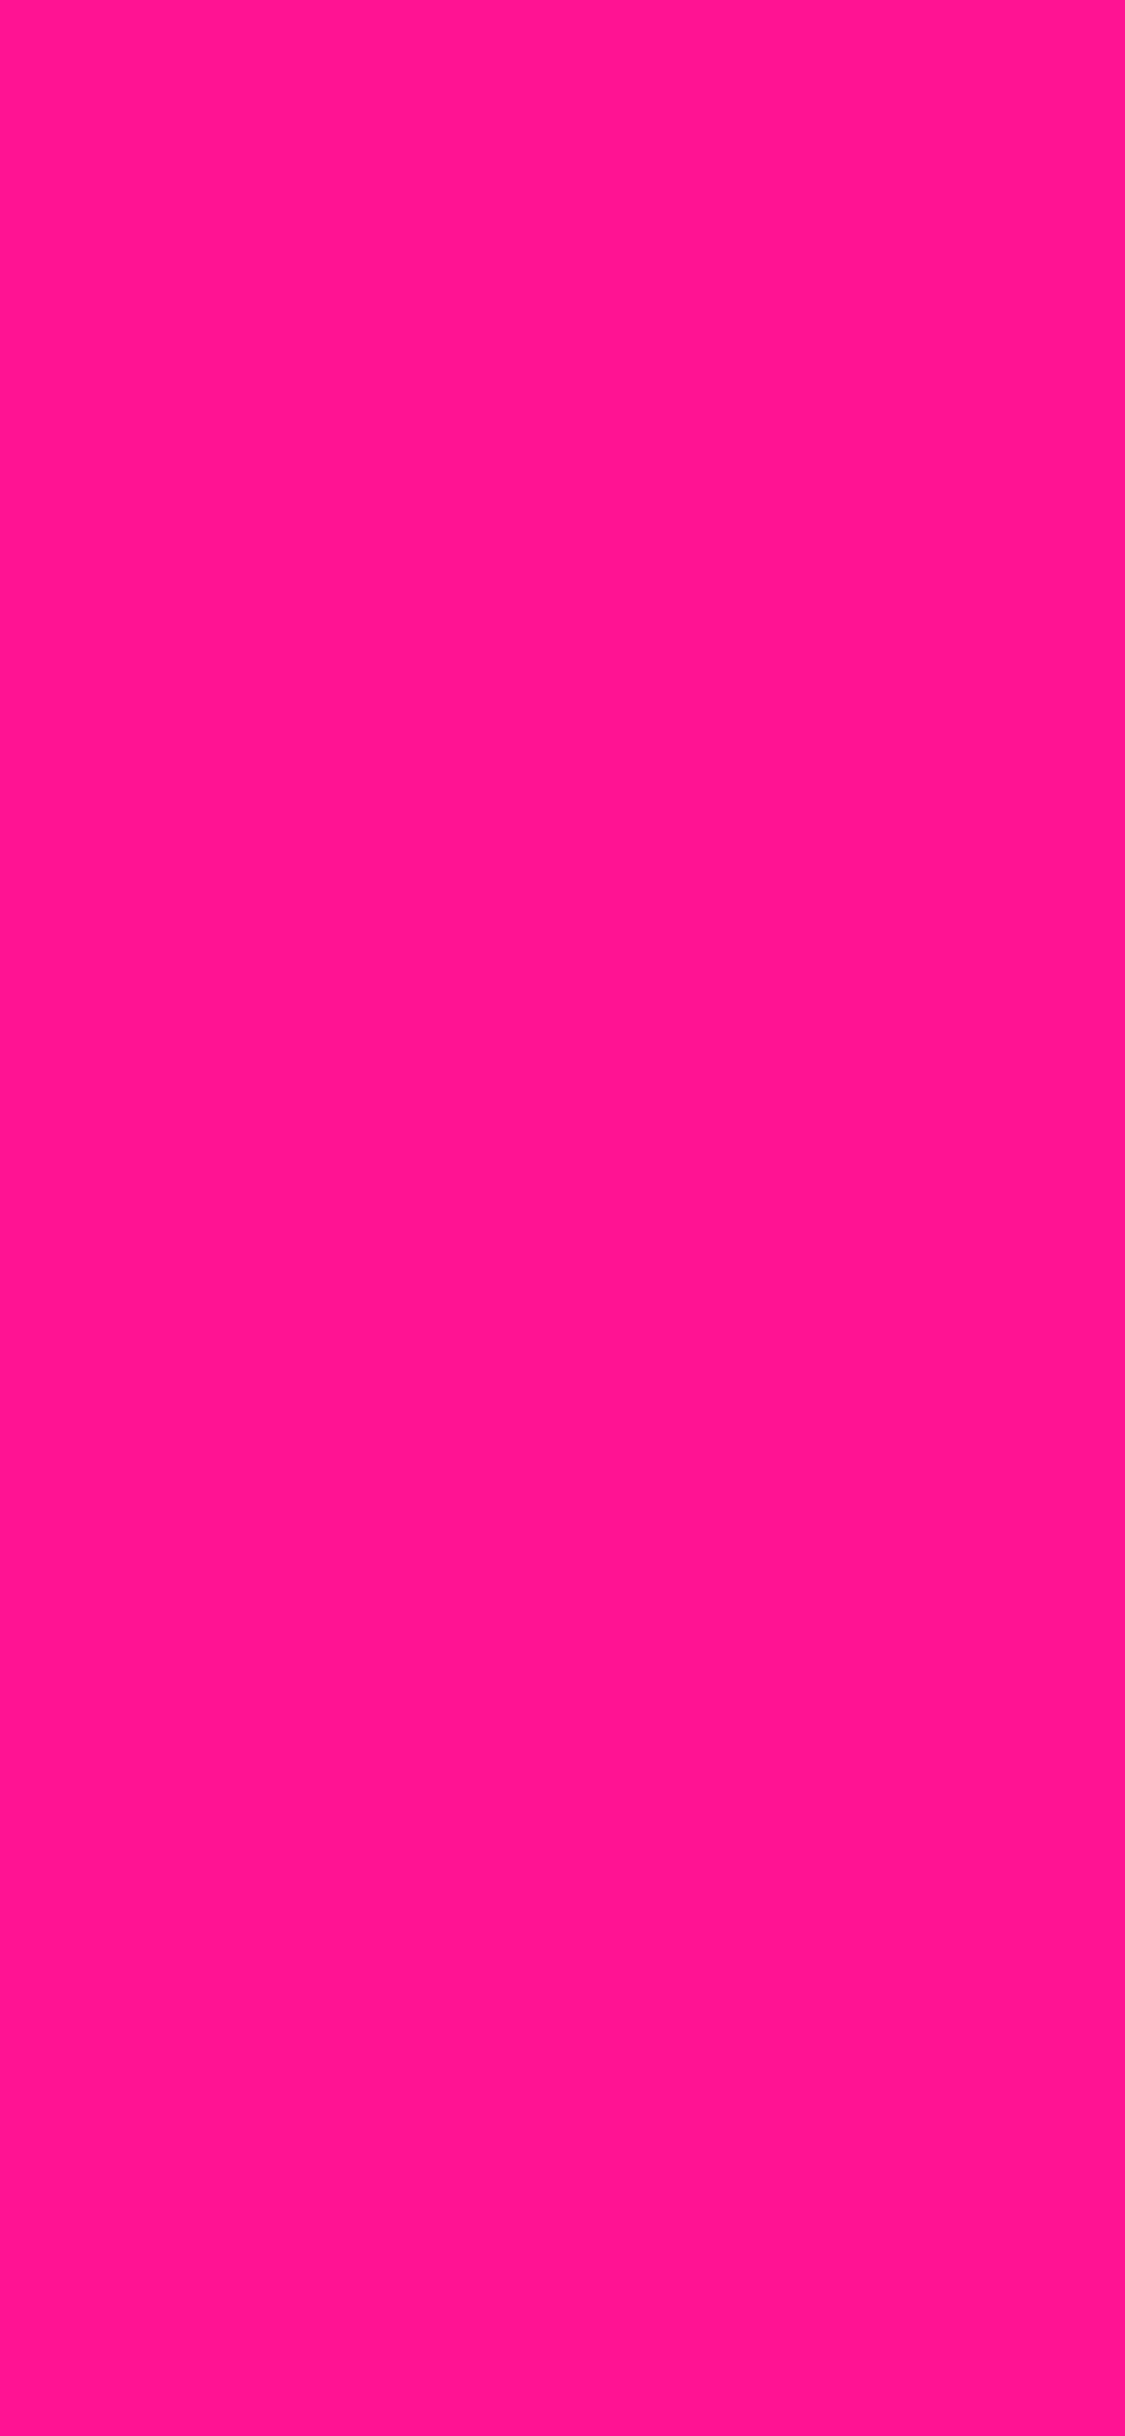 1125x2436 Deep Pink Solid Color Background